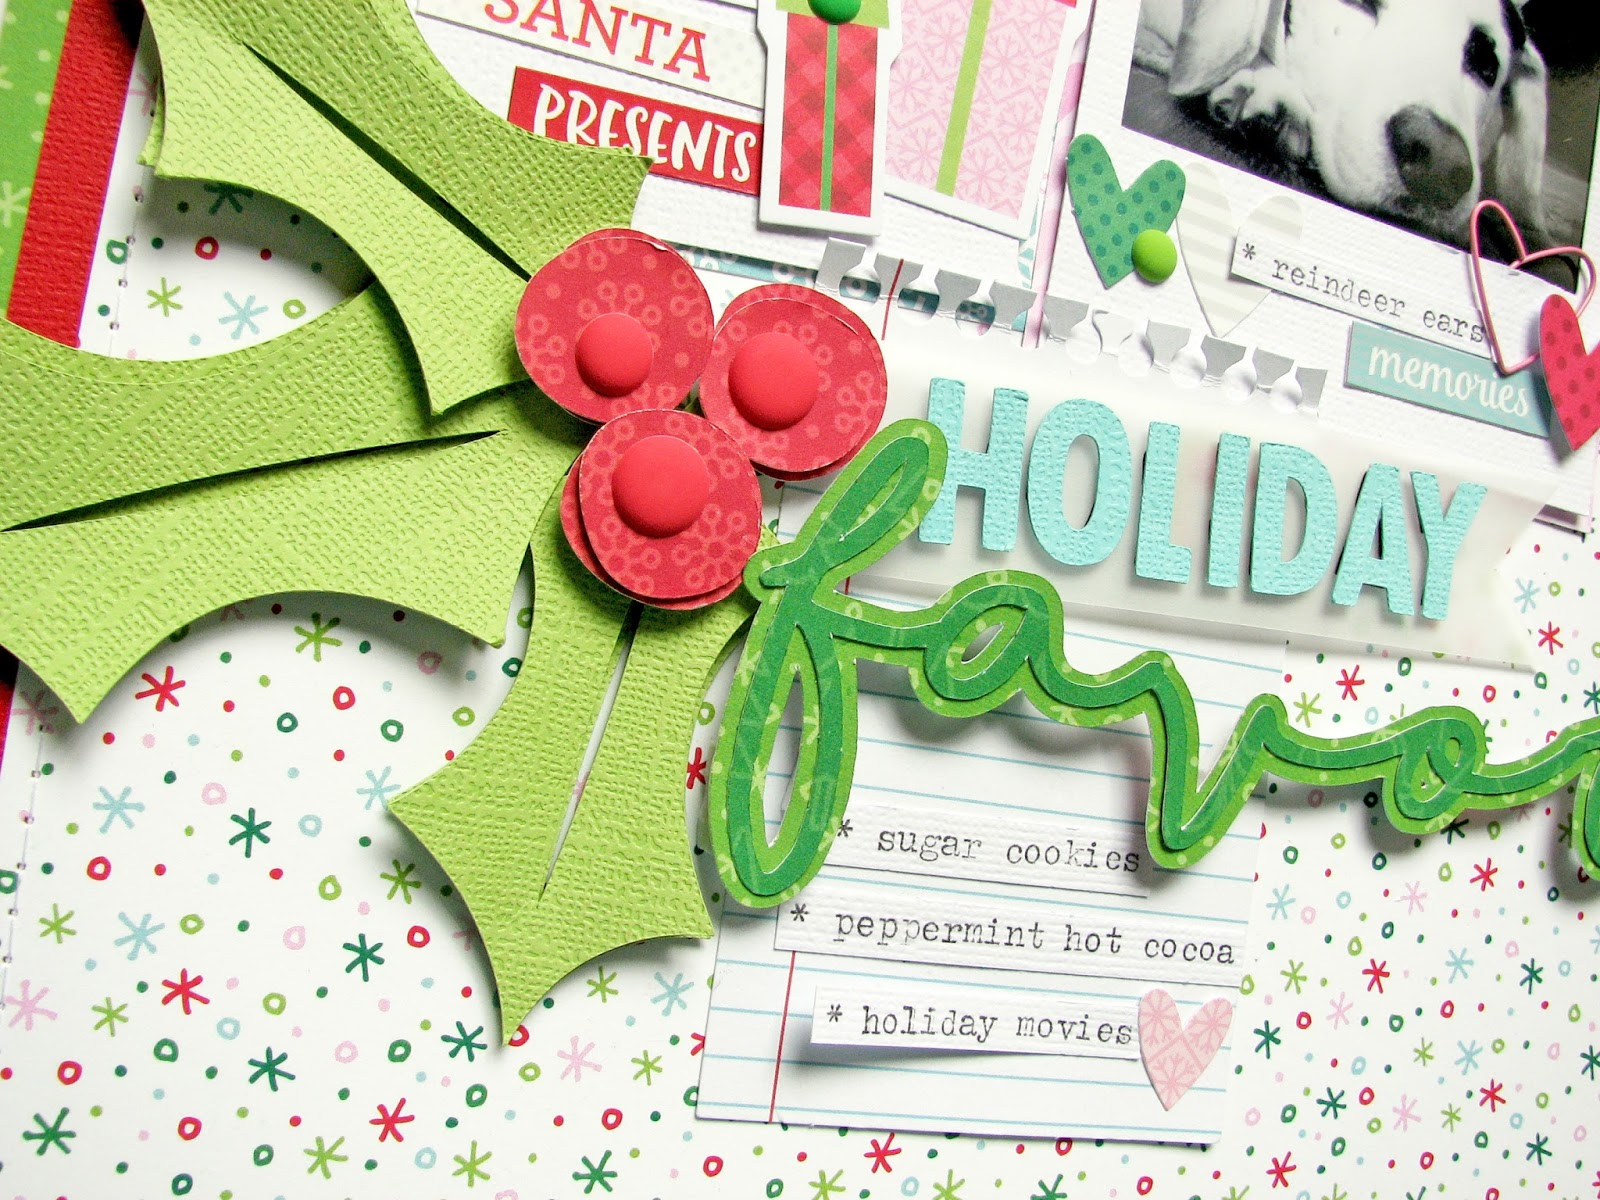 How to scrapbook a holiday - I Love The Matte Brads That Doodlebug Designs Came Out With How Great Do They Look In The Center Of The Holly Berries I Love The Little Mini Heart Clips